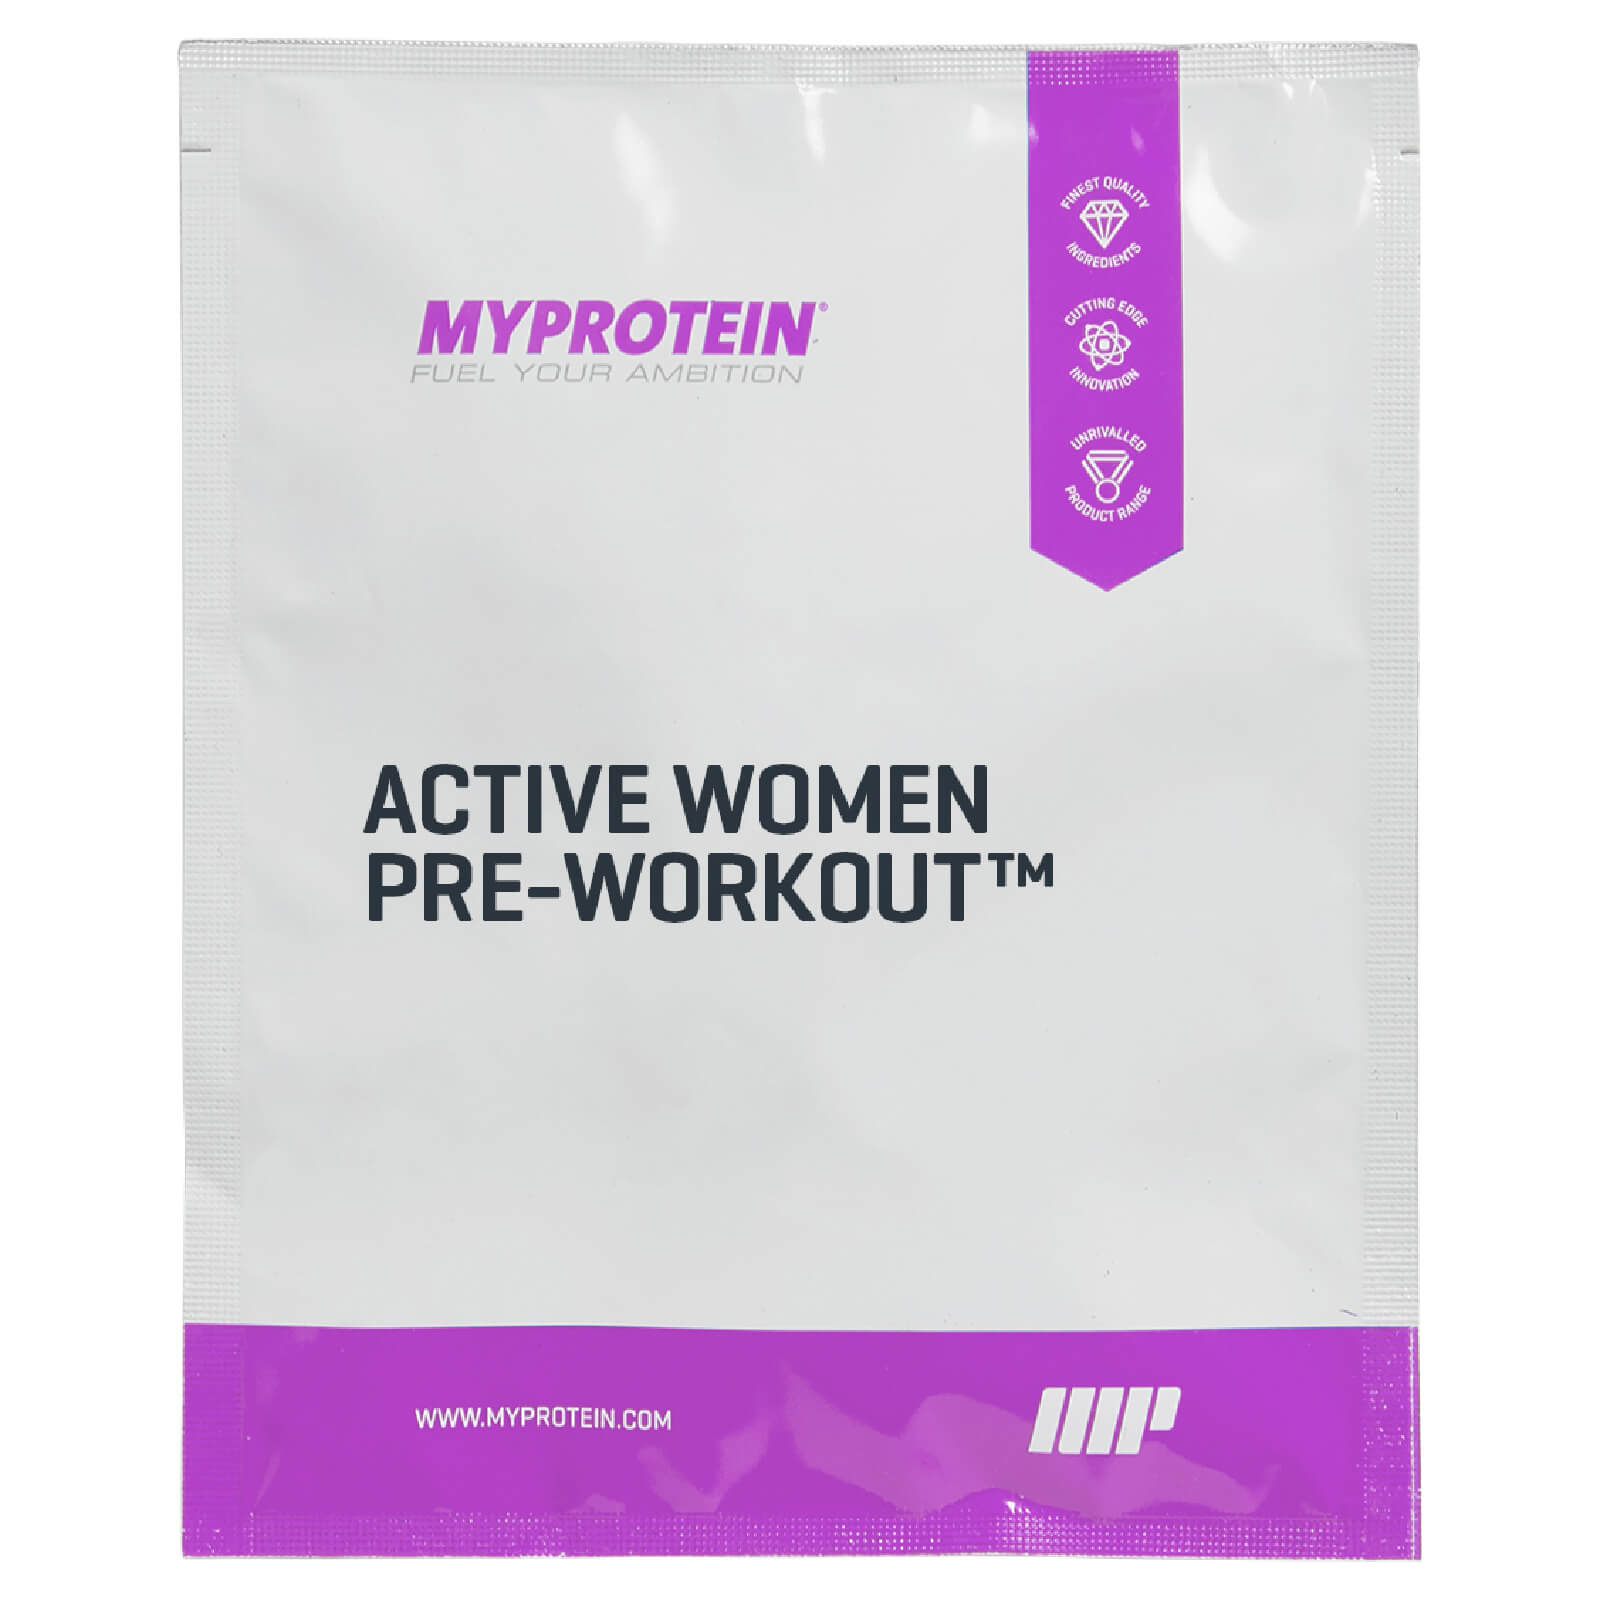 Active Women Pre-Workout (Sample) - Apple & Pear - 20g